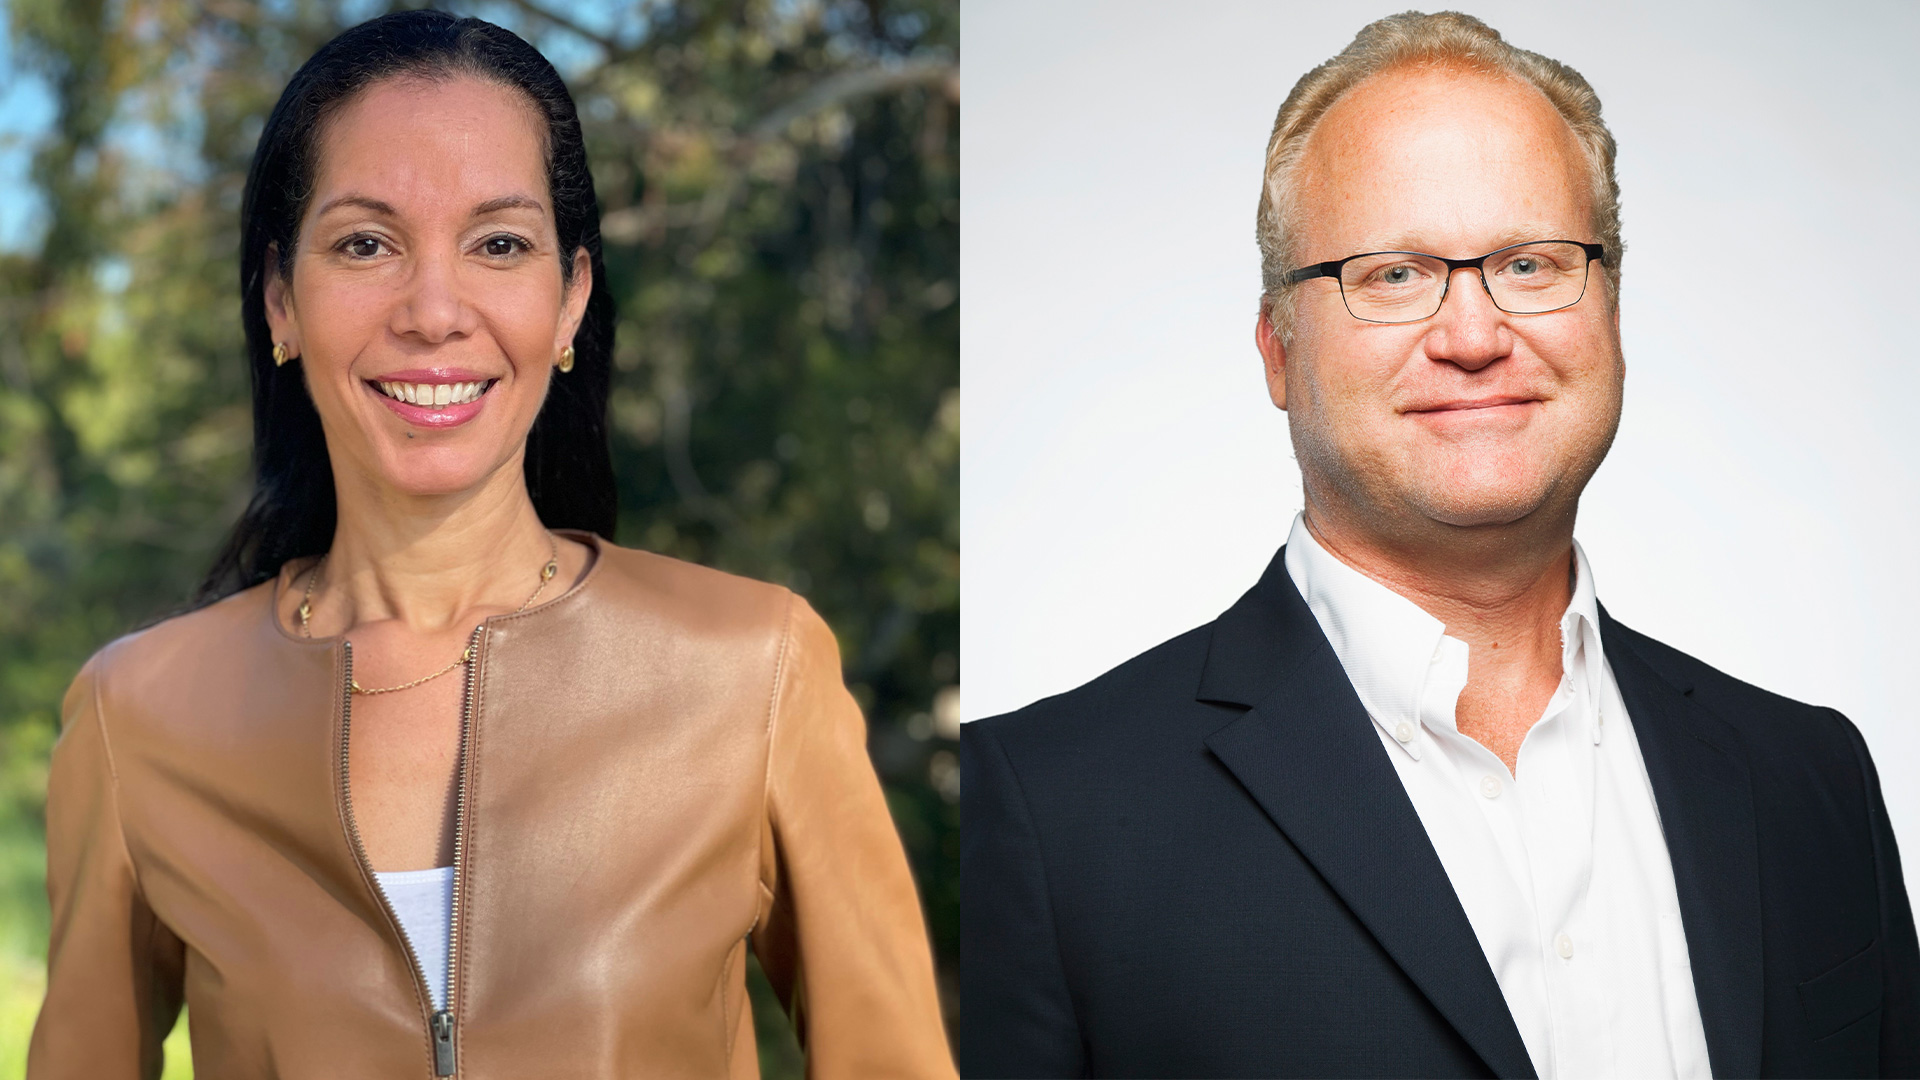 Marlene Pelage-Bates joins IPG Mediabrands from Charles Schwab while Guy Beach, left, will move into a role as global president.